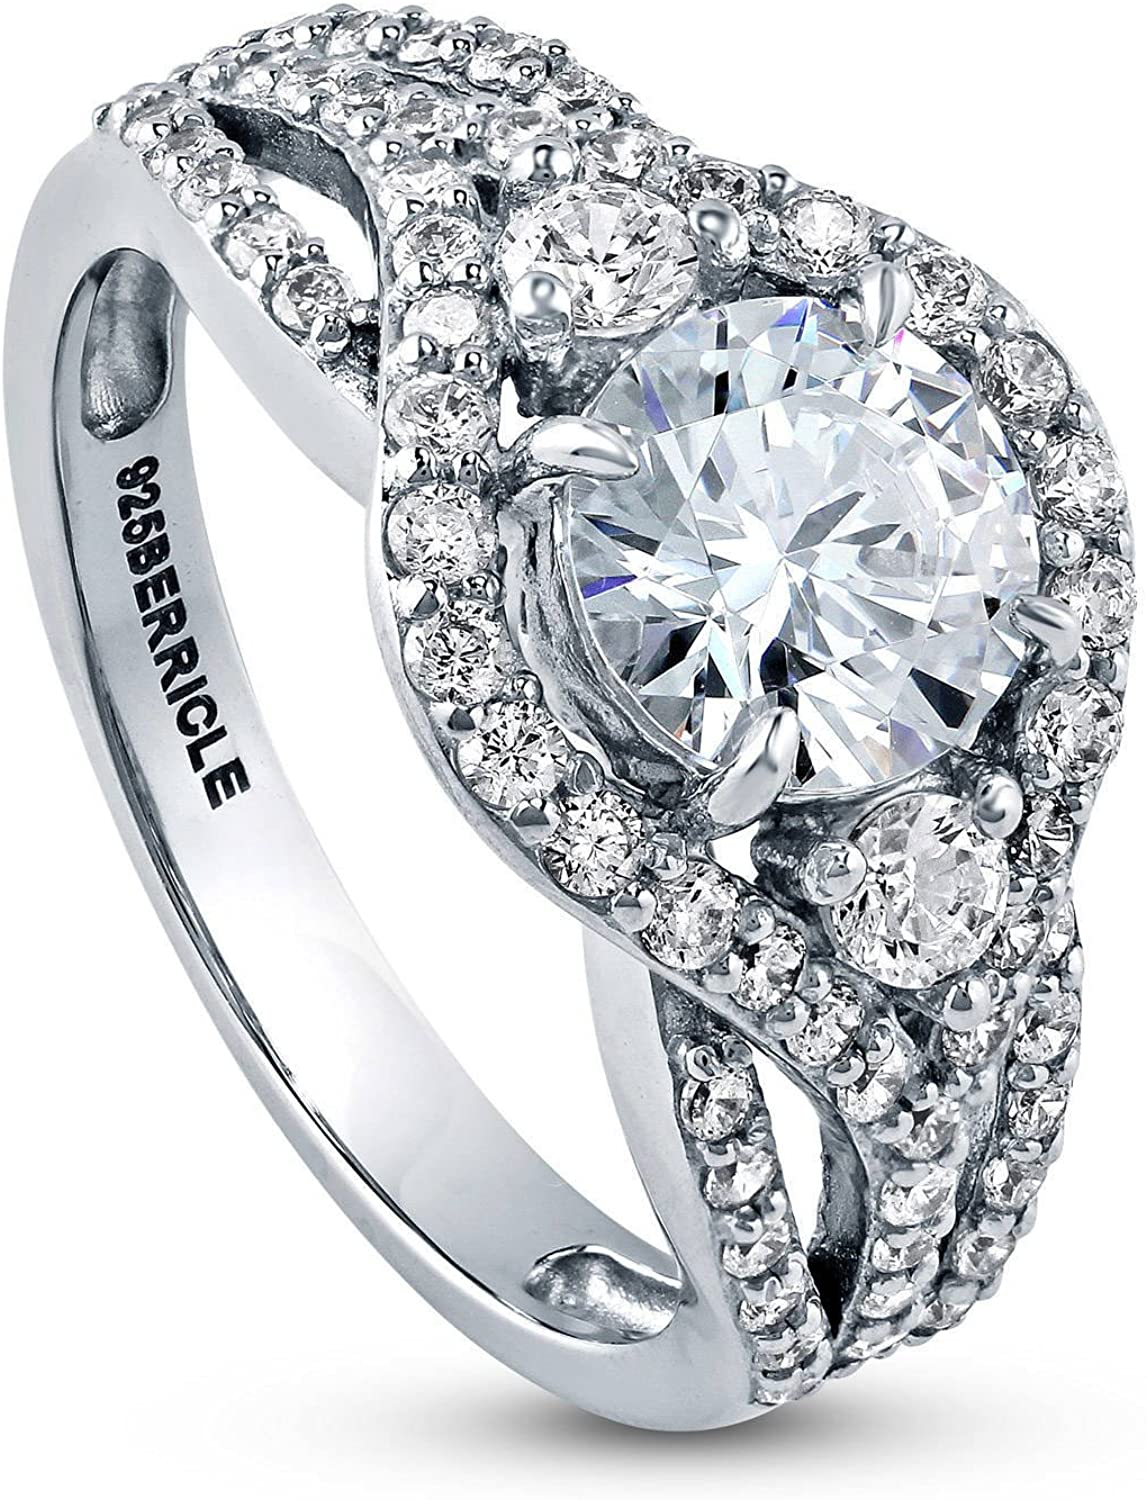 BERRICLE Rhodium Plated Sterling Silver Round Cubic Zirconia CZ 3-Stone Anniversary Engagement Wedding Ring Set 2.3 CTW